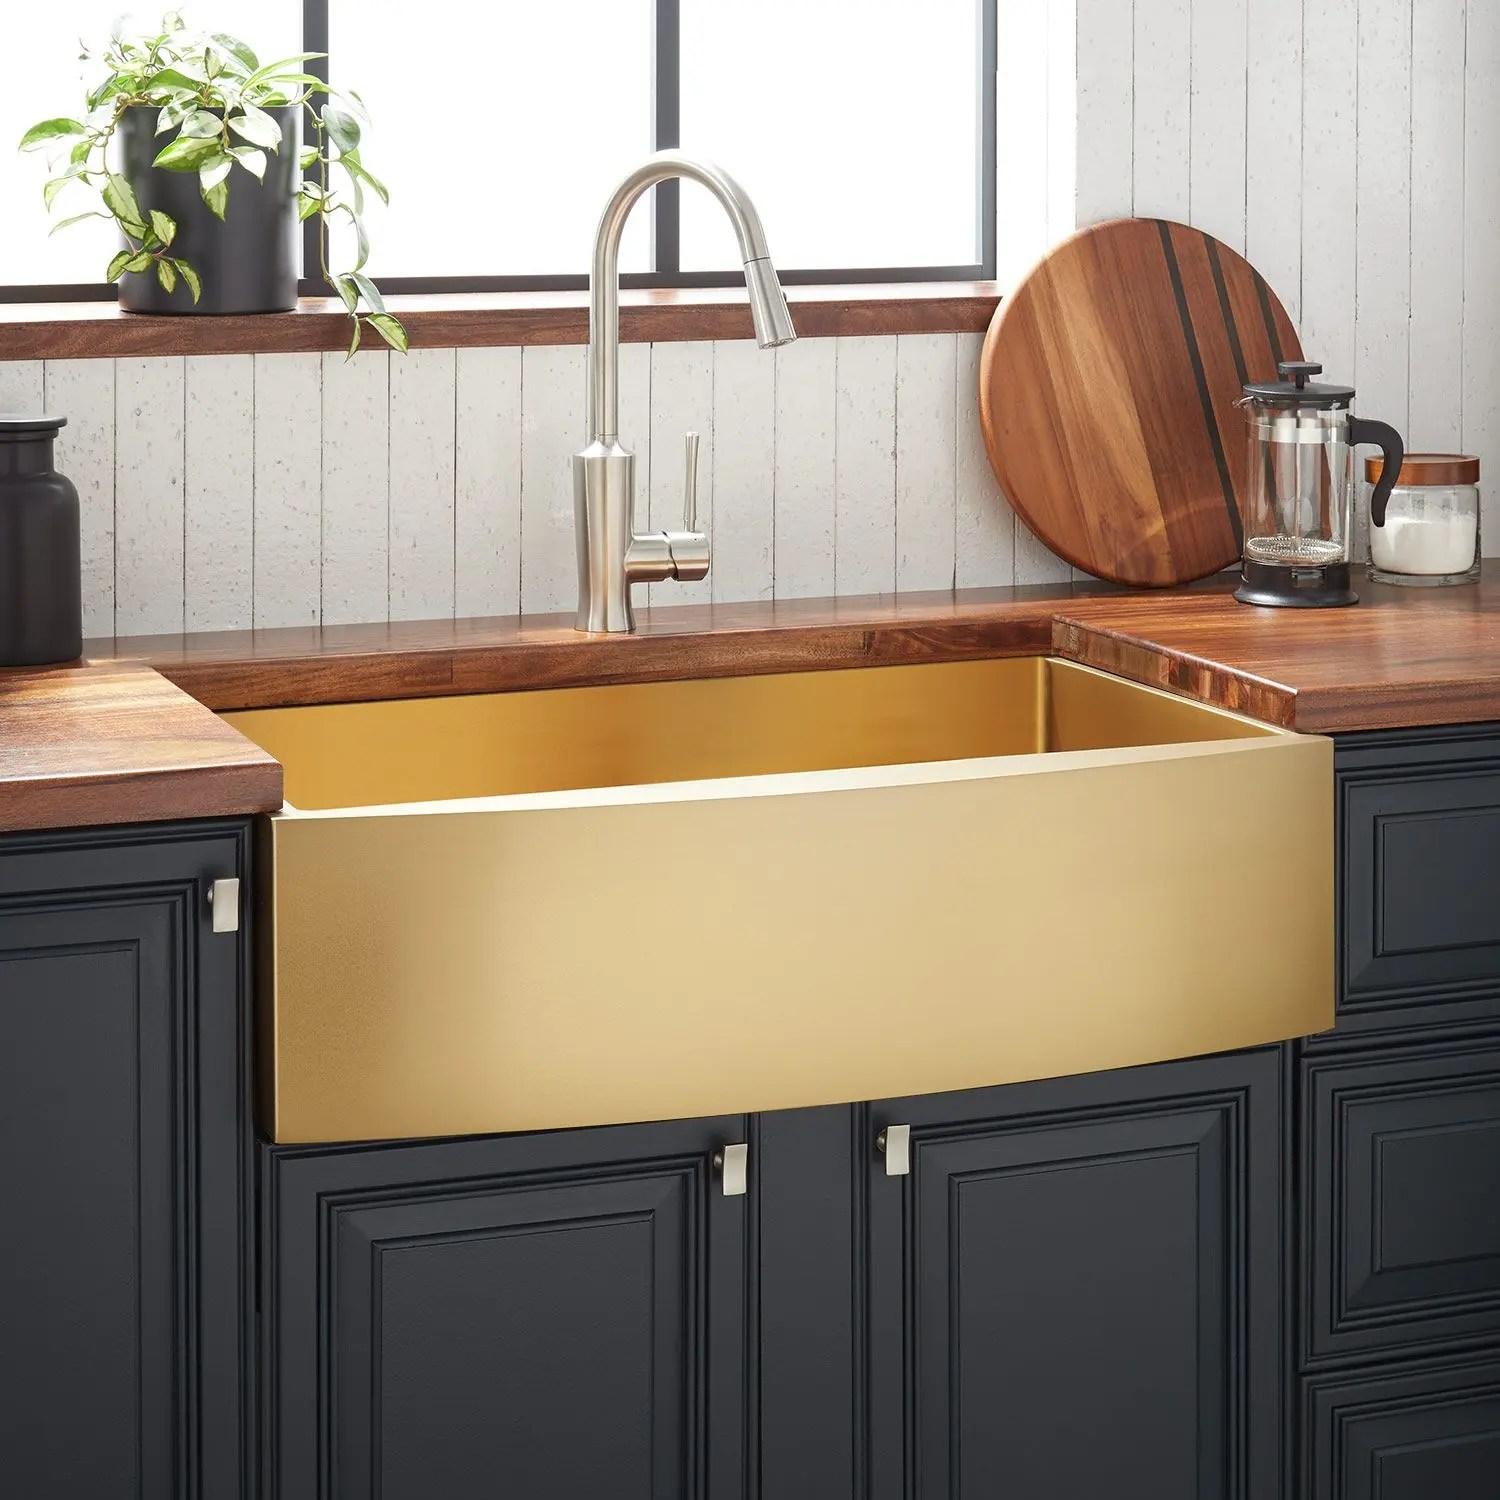 30 atlas stainless steel farmhouse sink curved apron matte gold